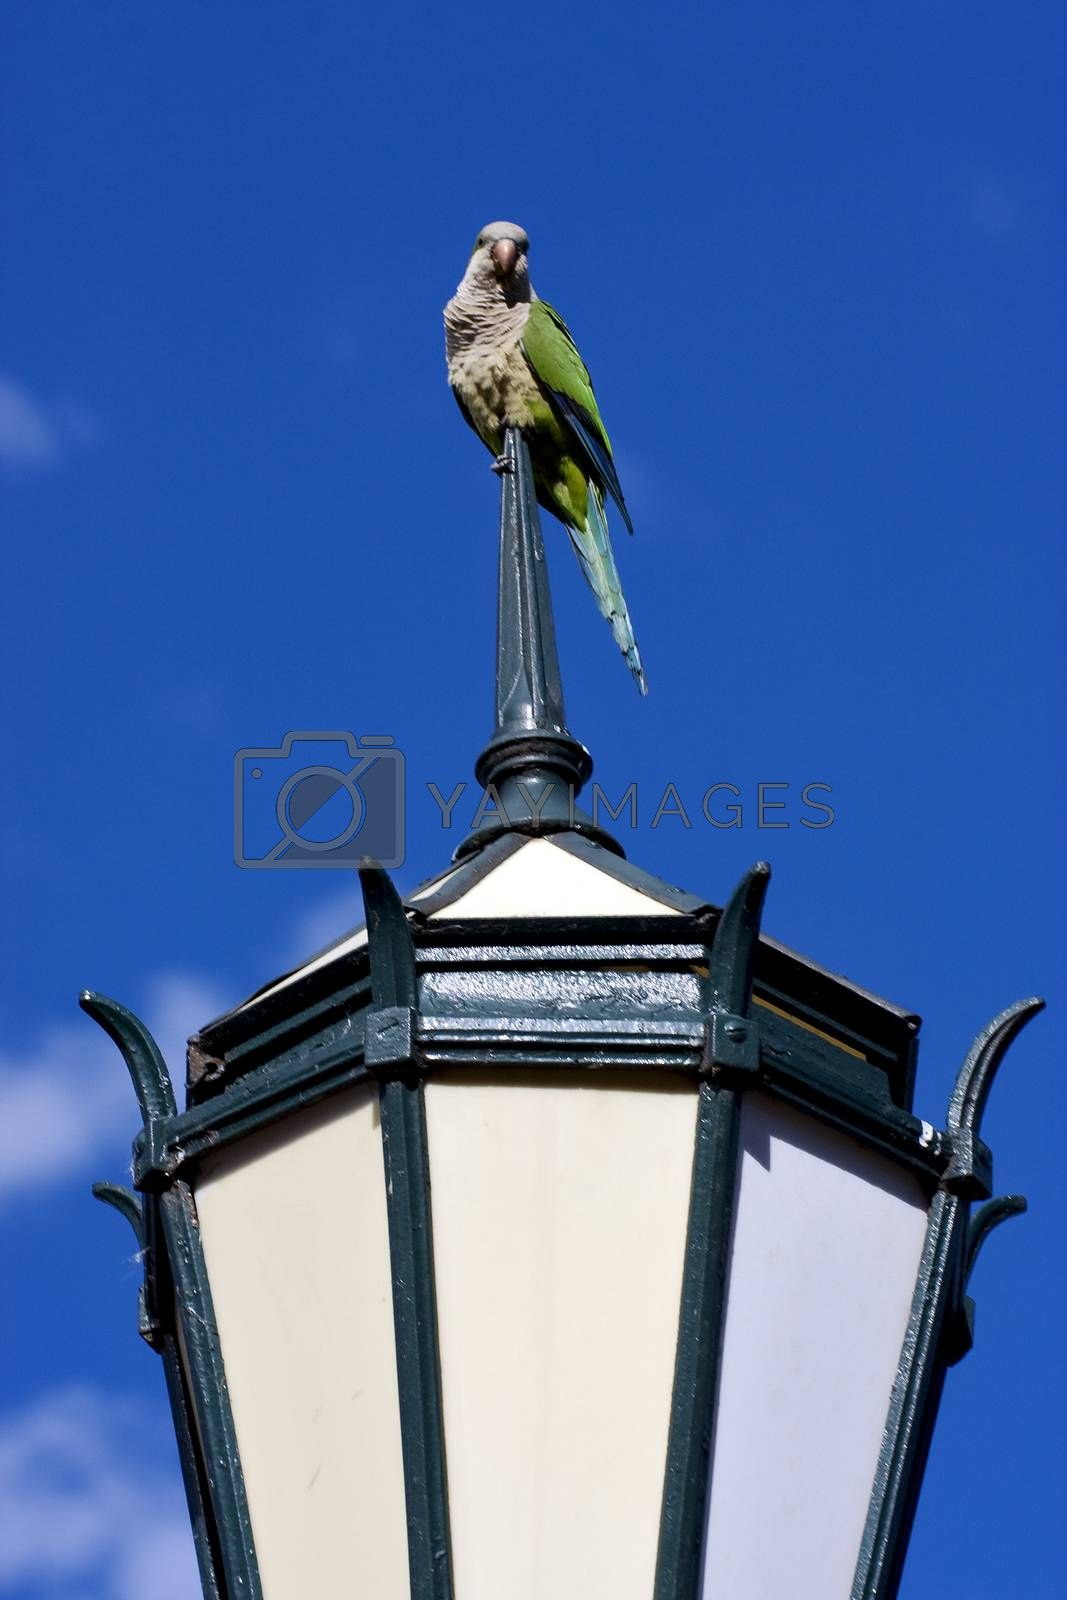 Royalty free image of  street lamp  and parrot by lkpro